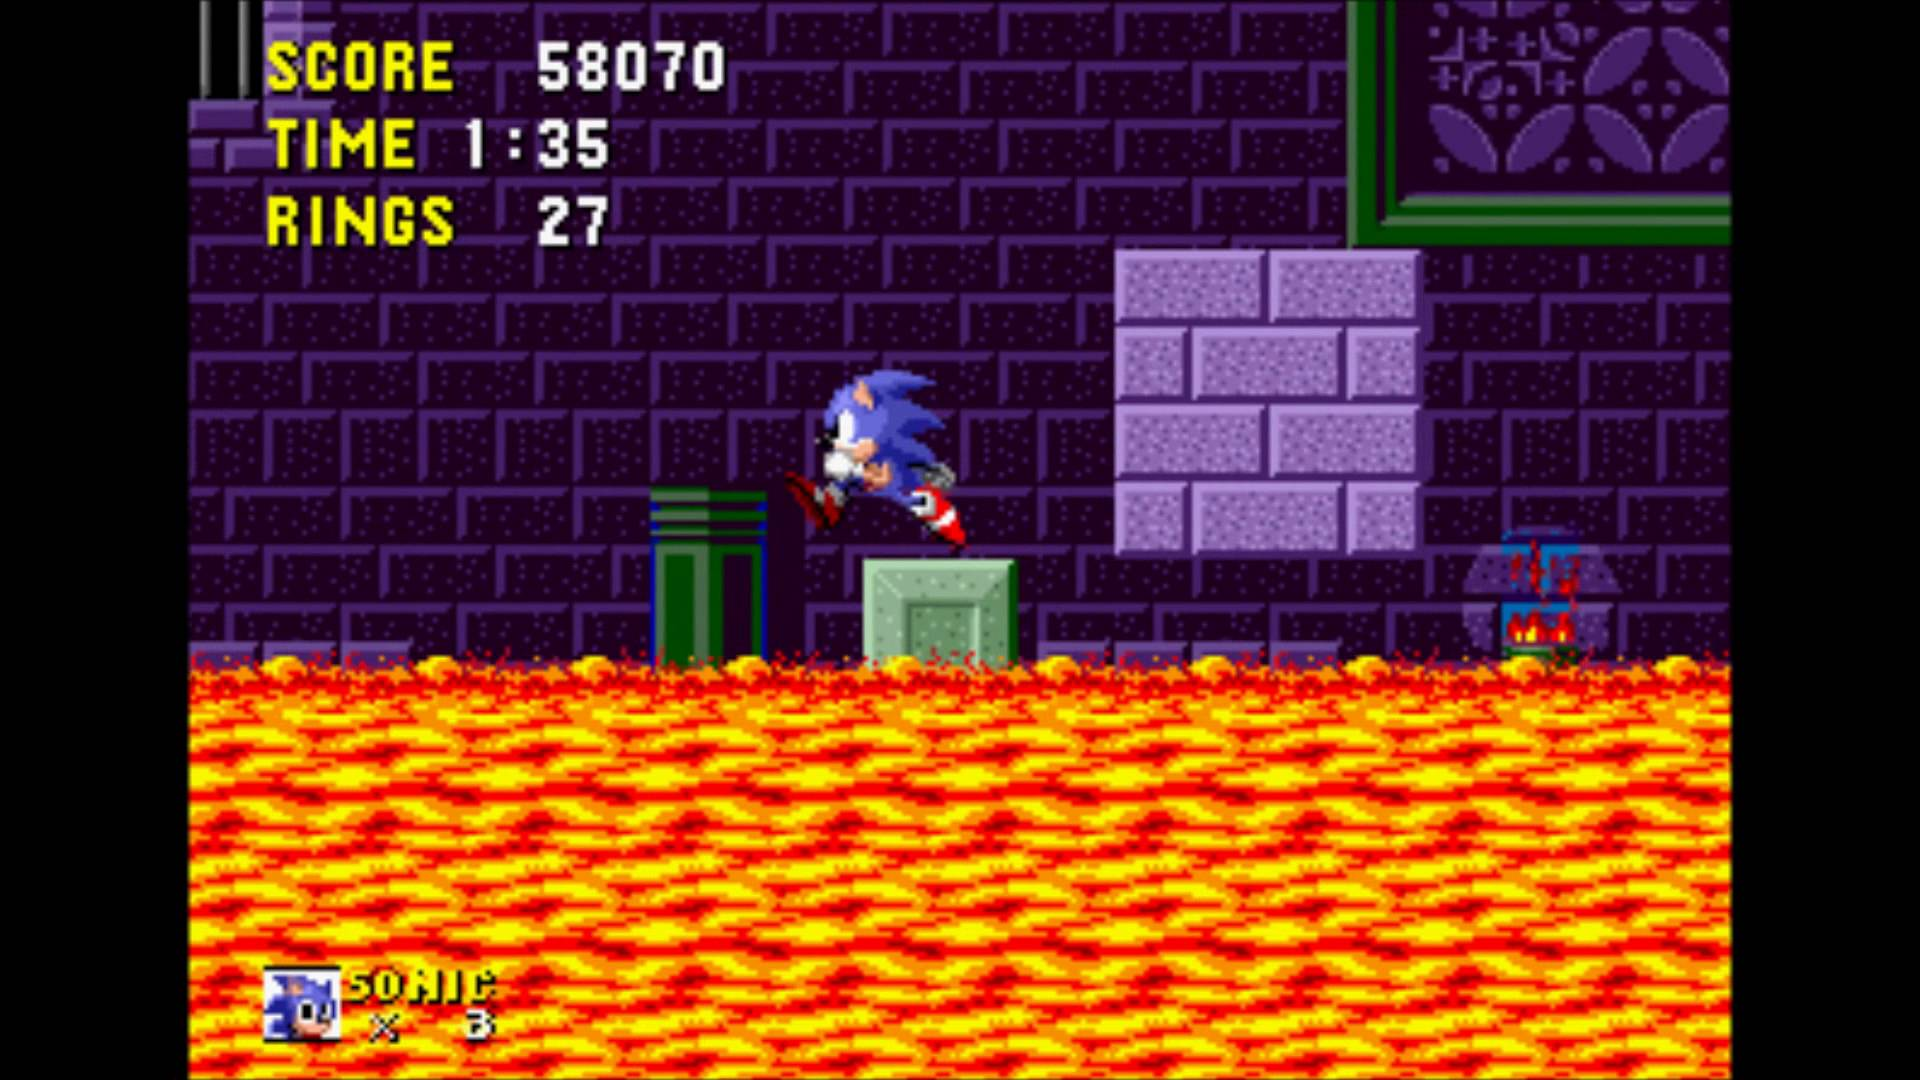 Sonic - Final Fantasy 1 Game